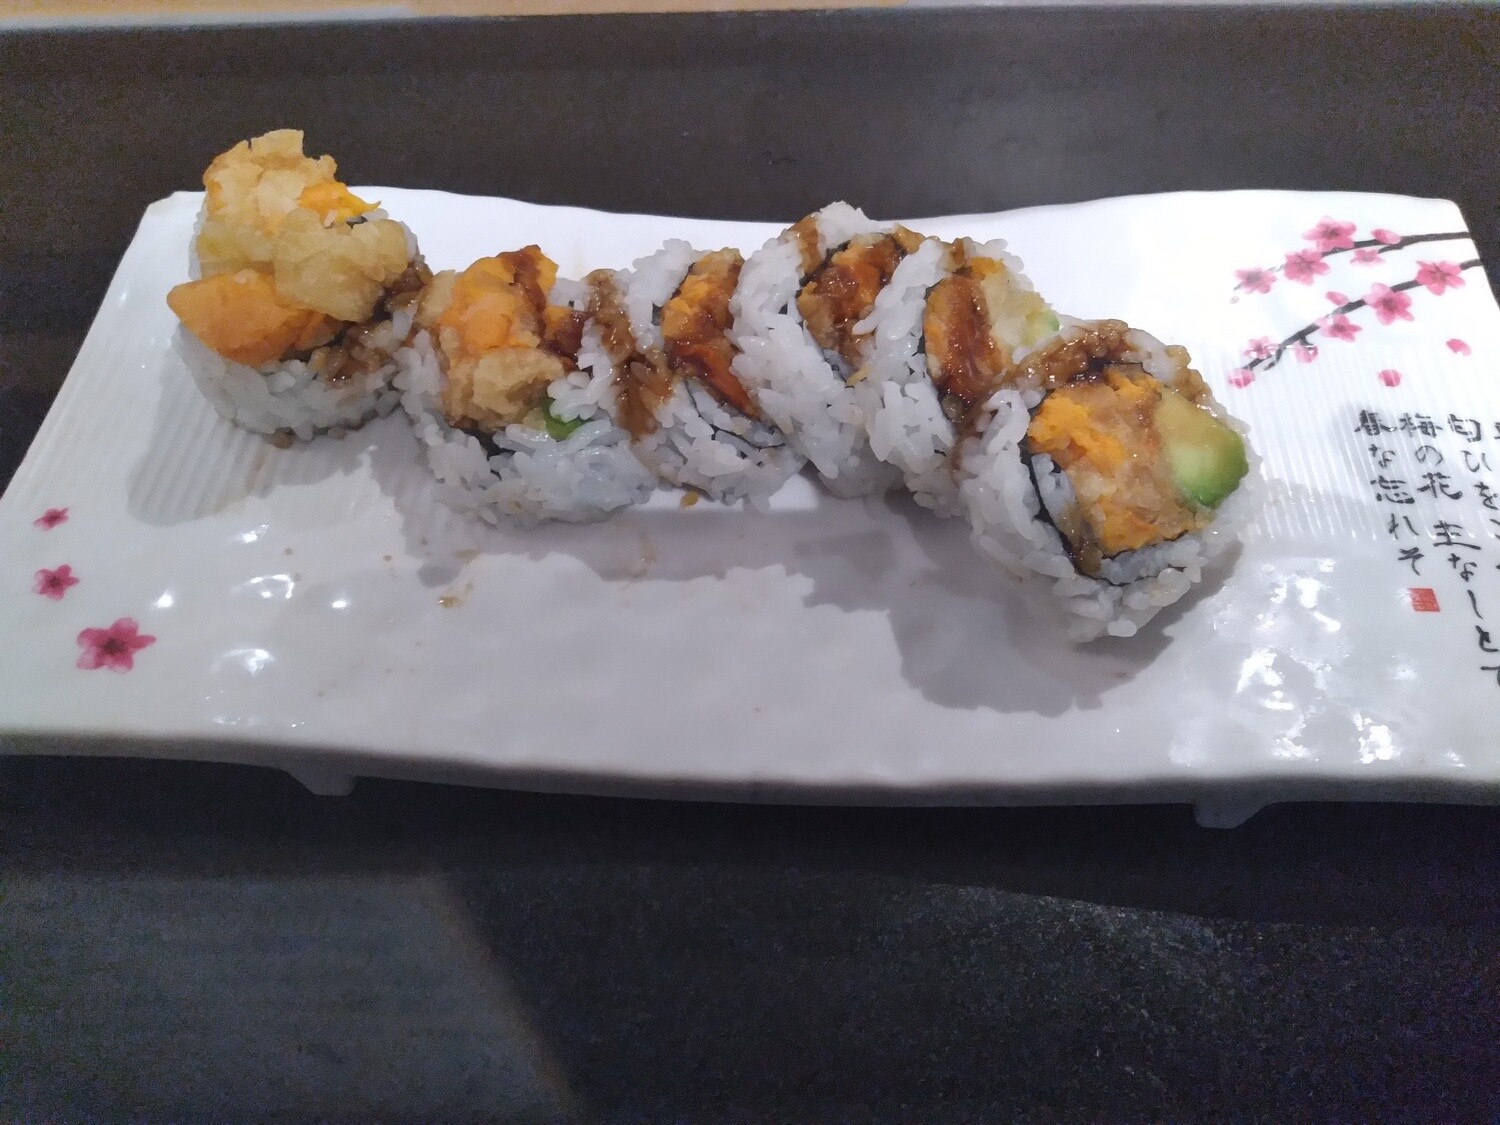 Yam with Avocado Roll